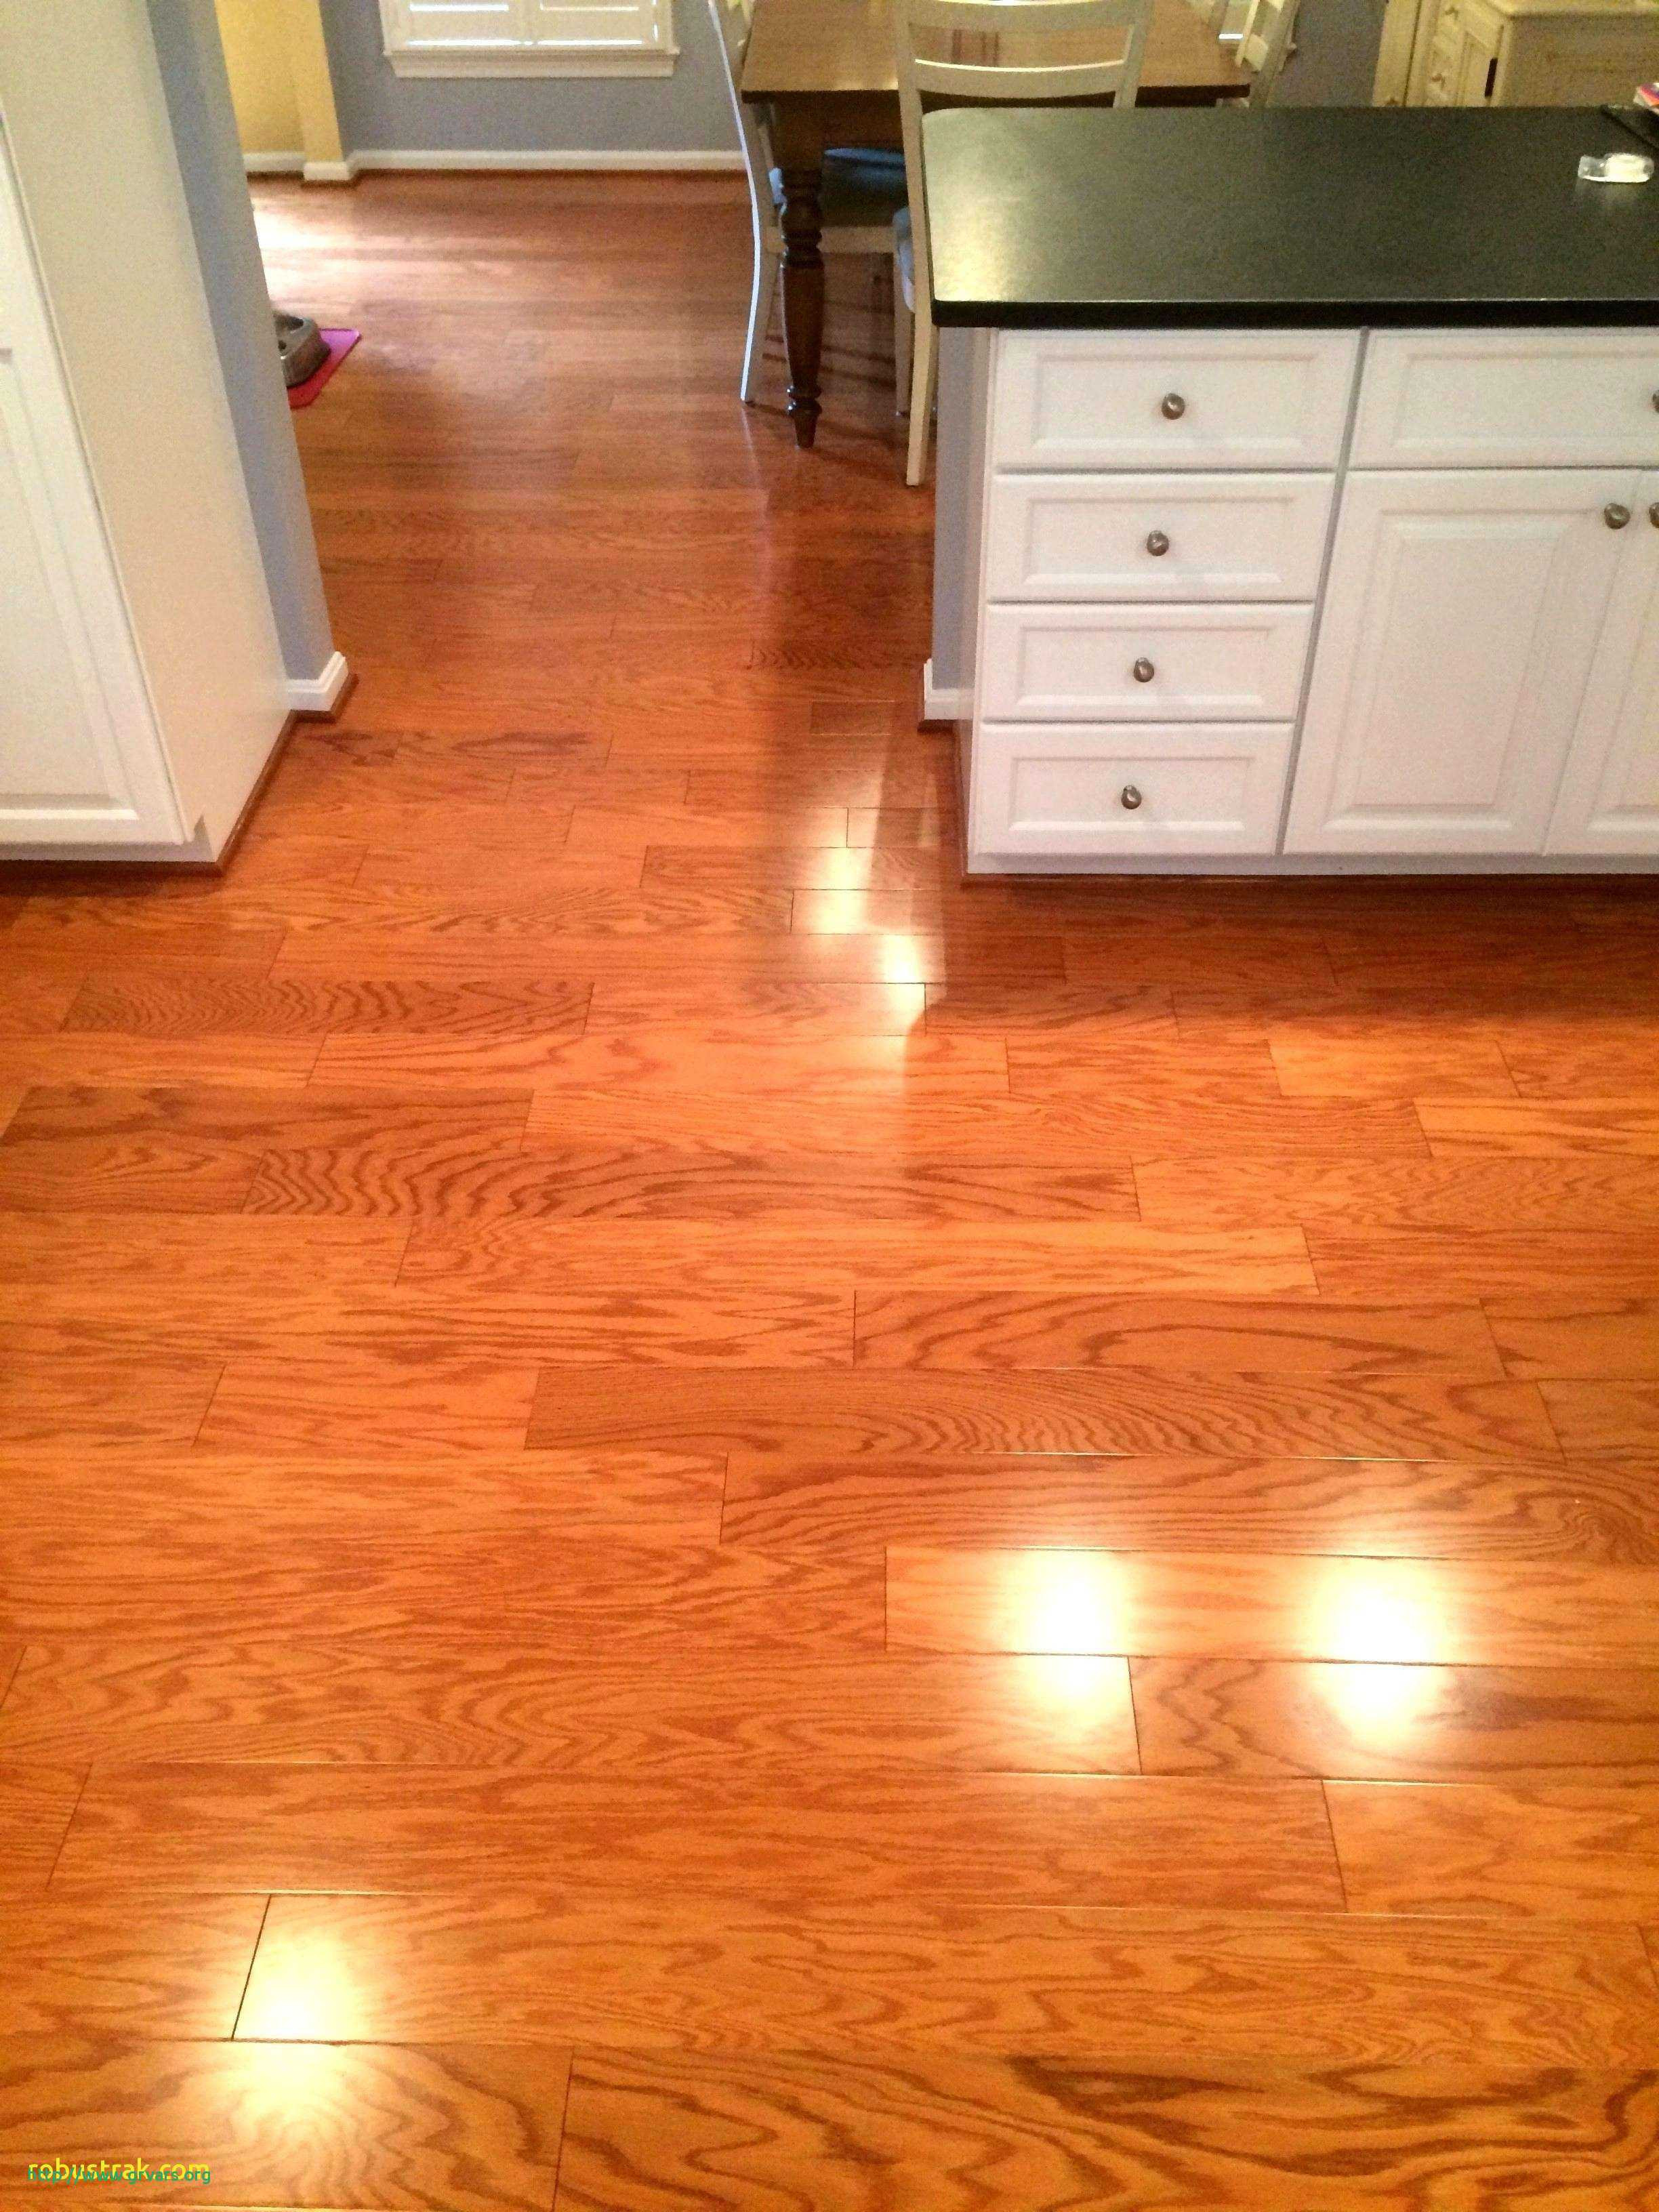 hardwood floor alternatives of 25 beau fore wood floors ideas blog within hardwood floors in the kitchen fresh where to buy hardwood flooring inspirational 0d grace place barnegat